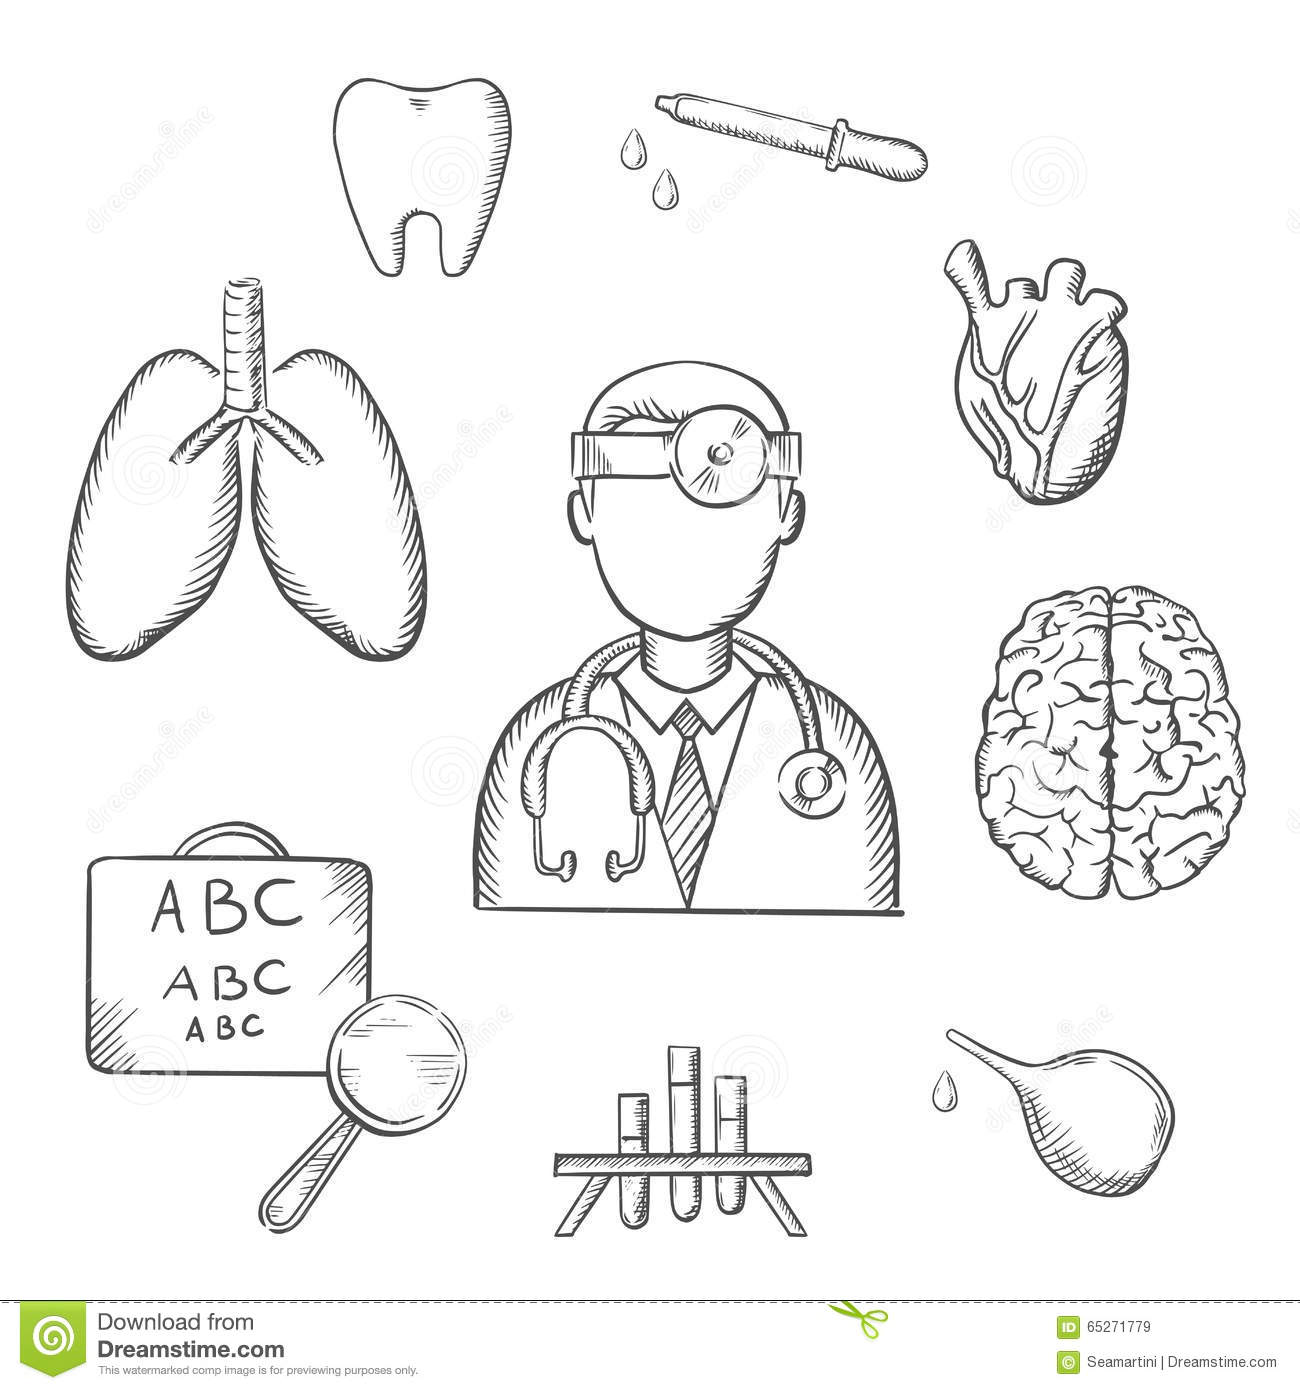 Human Organs And Medical Sketch Icons Stock Vector - Illustration of ...